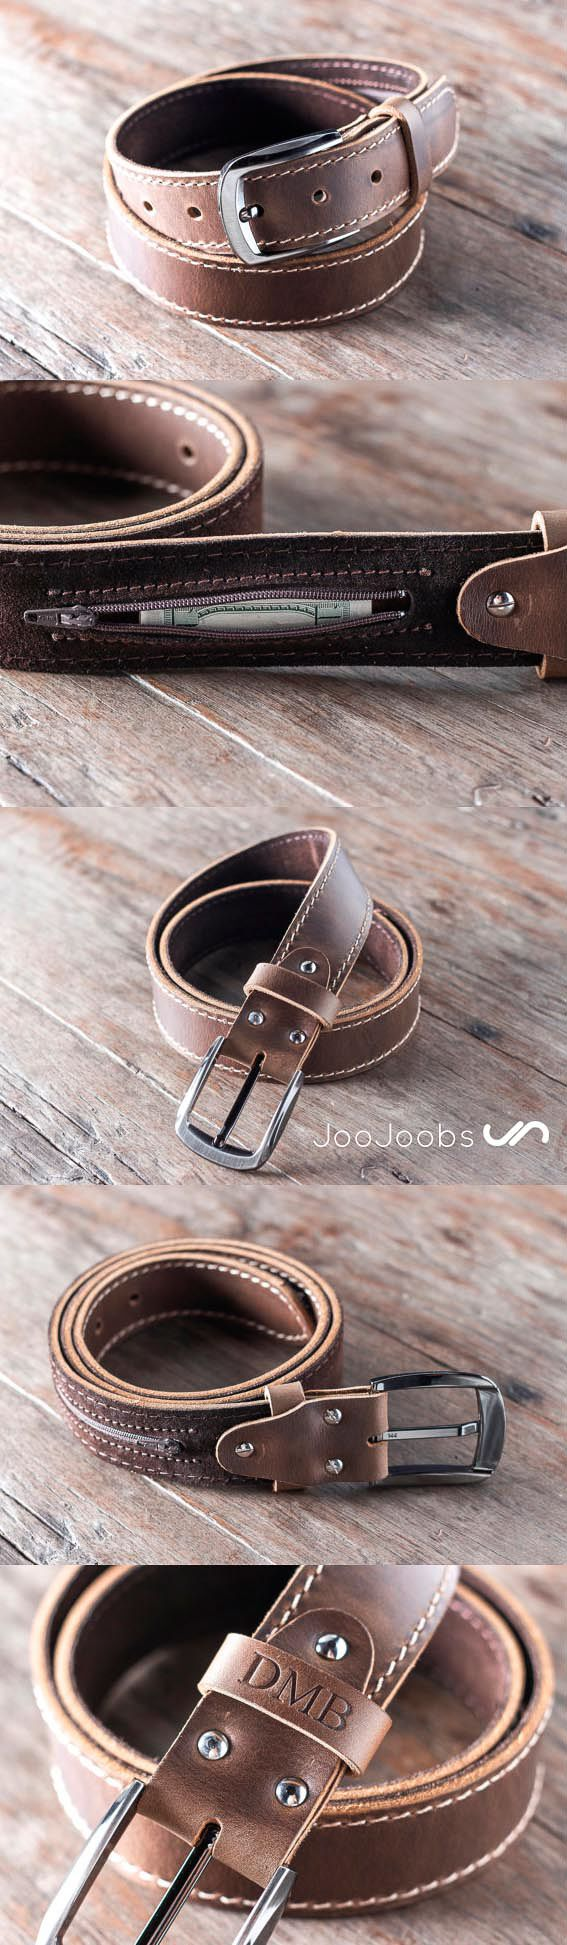 The last handmade leather belt you will ever buy!!  FREE personalization makes it the perfect gift.